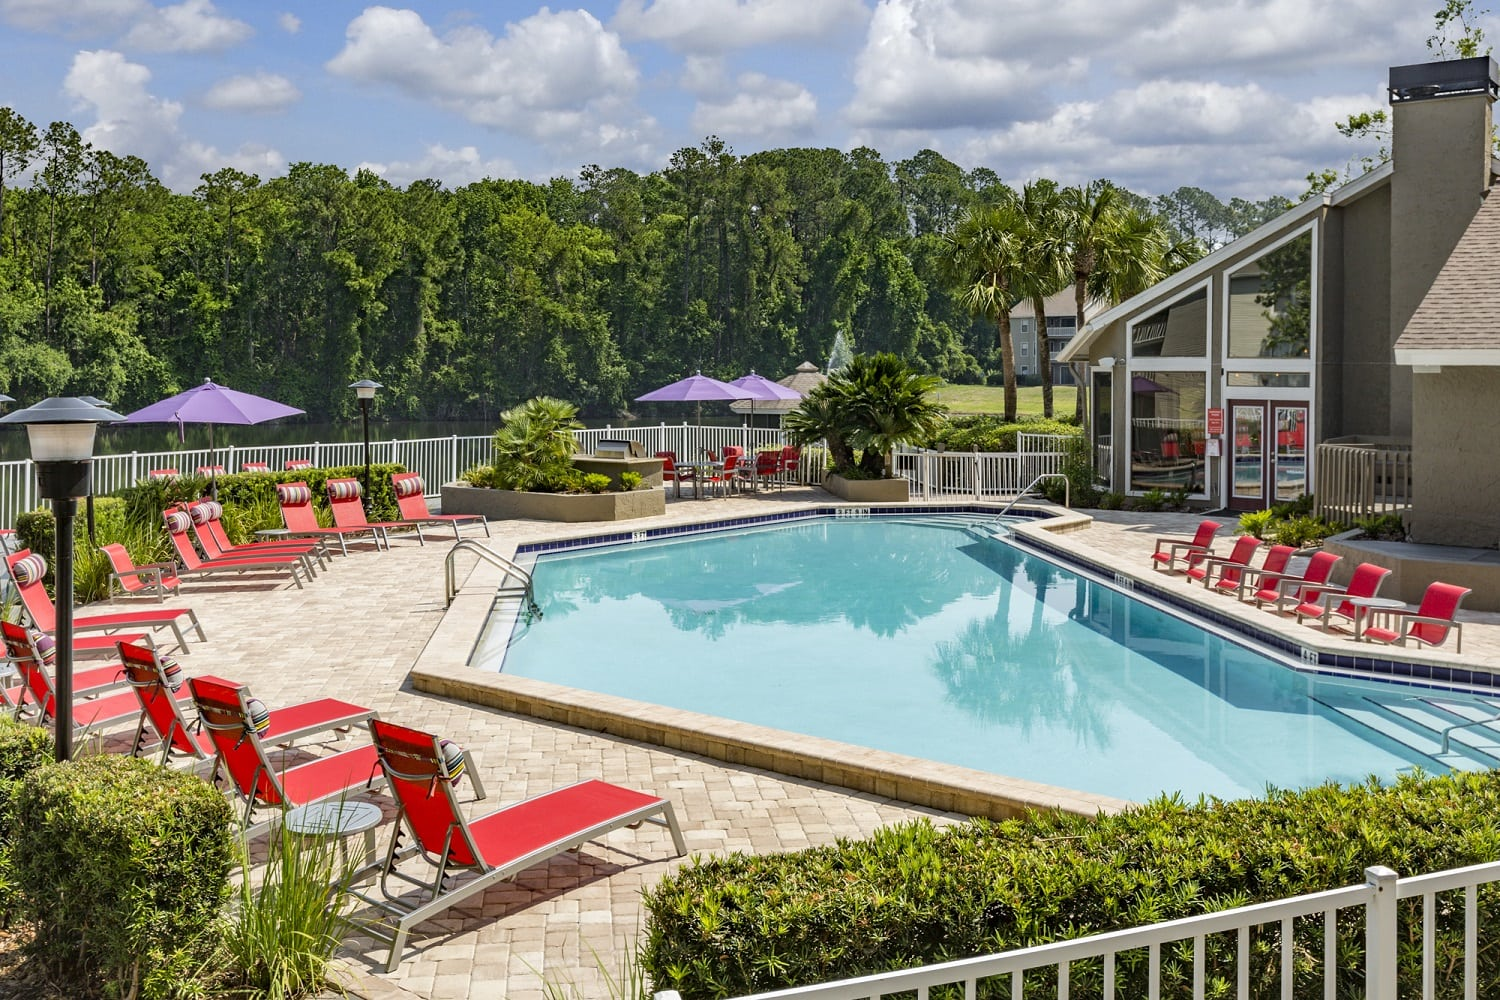 The Reserve at Mandarin offers beautiful homes for rent in Jacksonville, FL